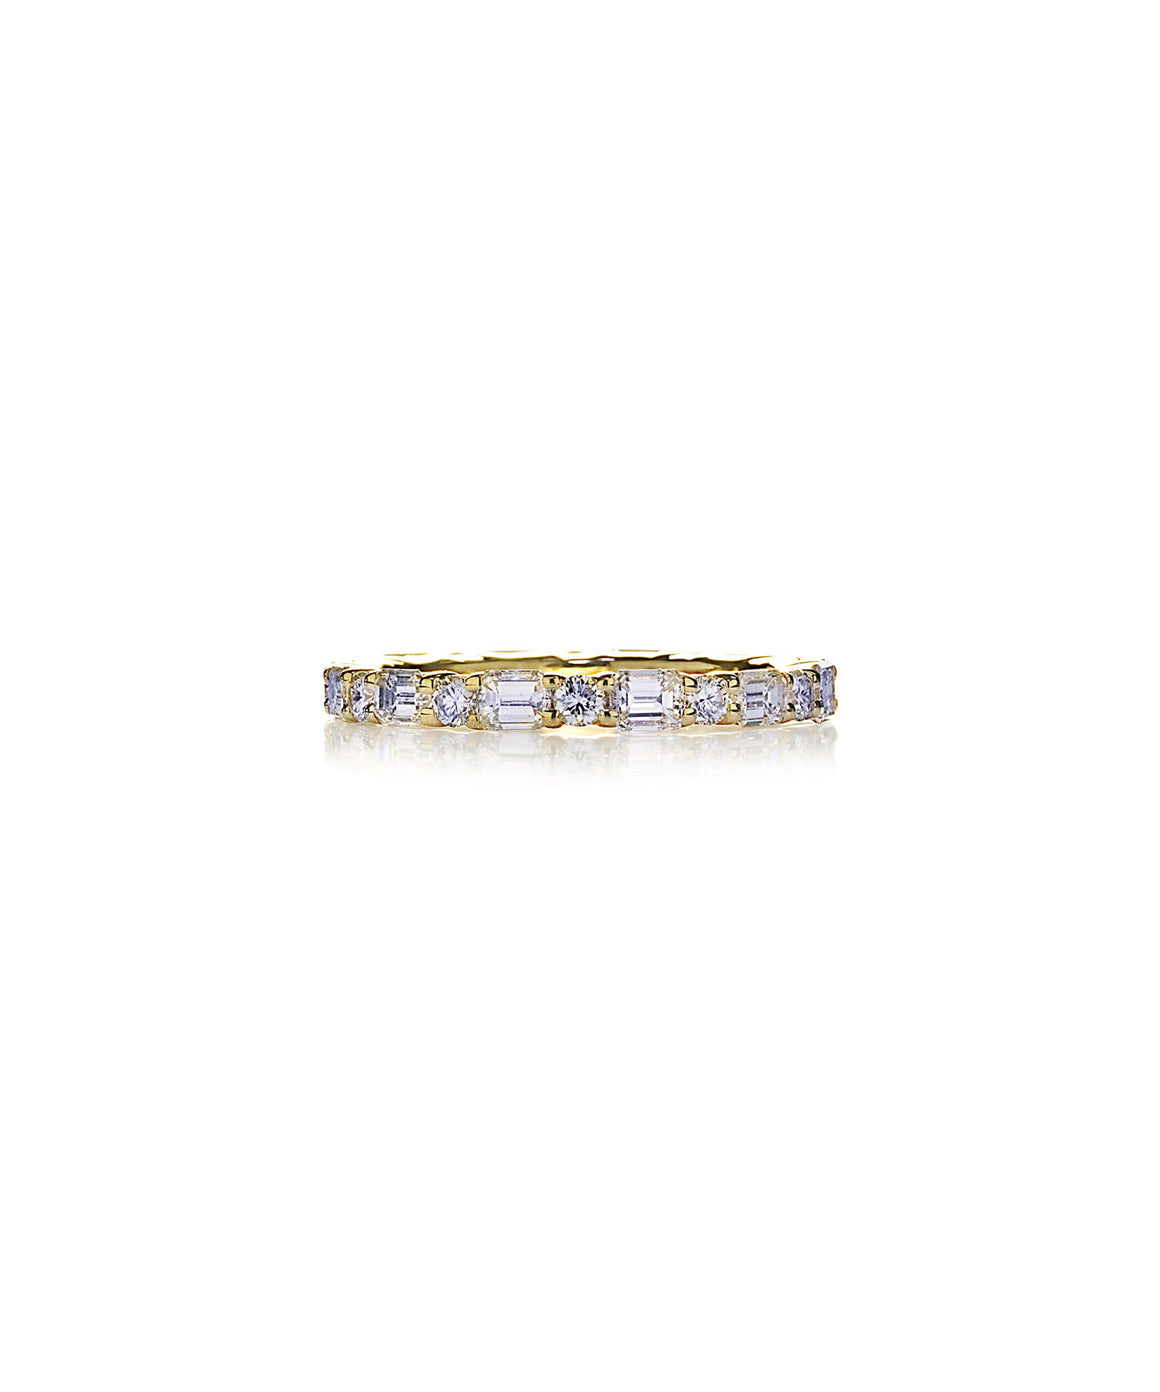 Eternity ring in yellow gold